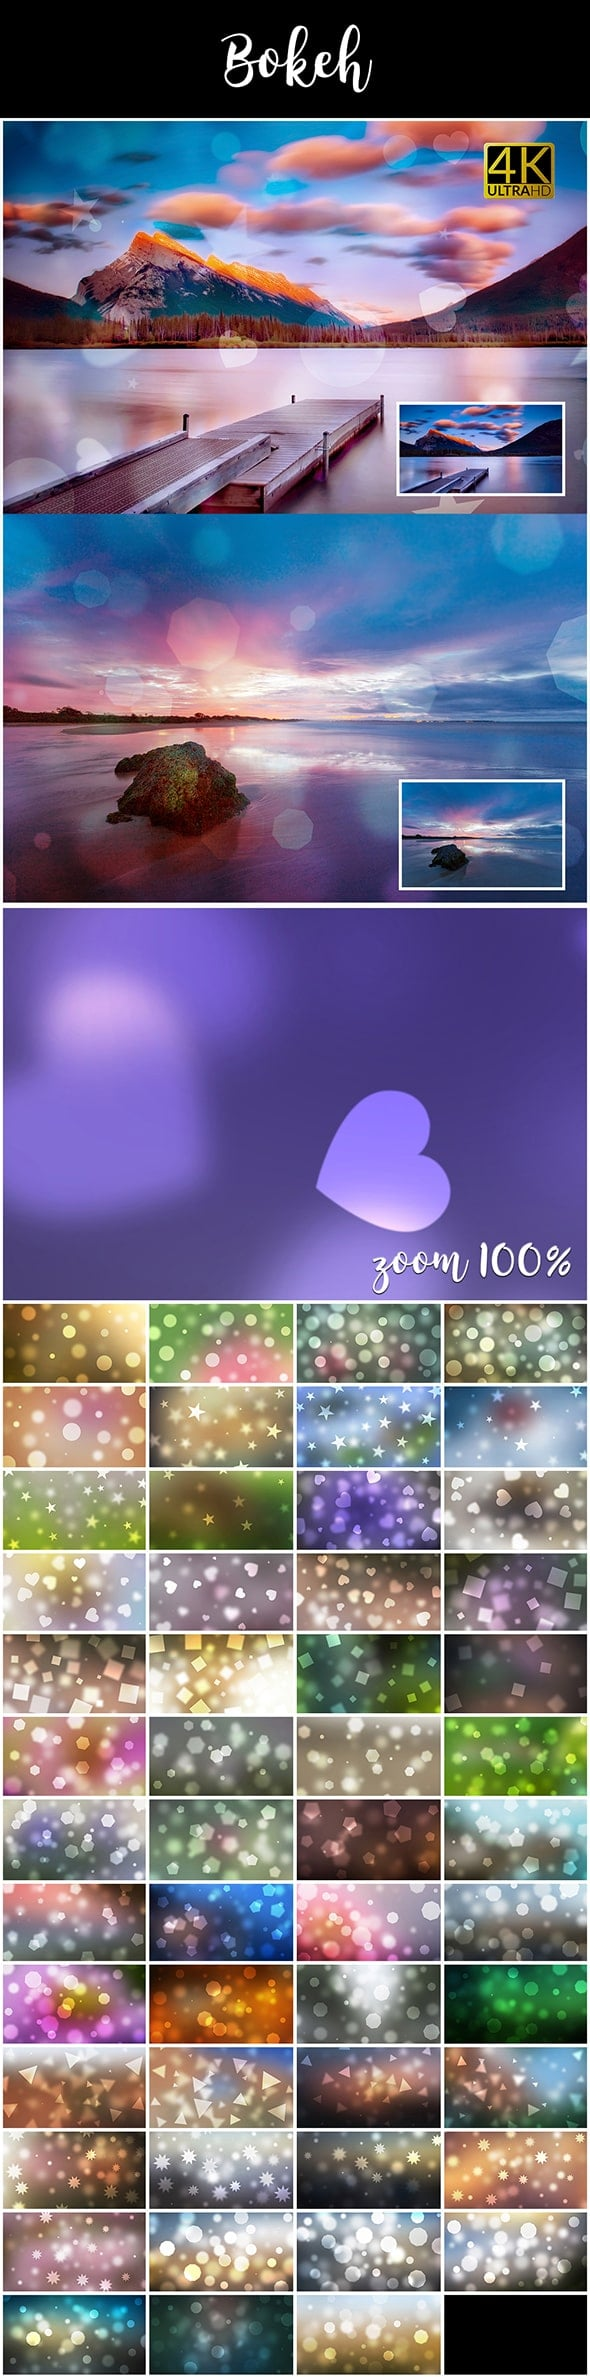 Over 11 400 Aesthetic Overlays Bundle SPECIAL OFF 98% - 60 51Bokeh min